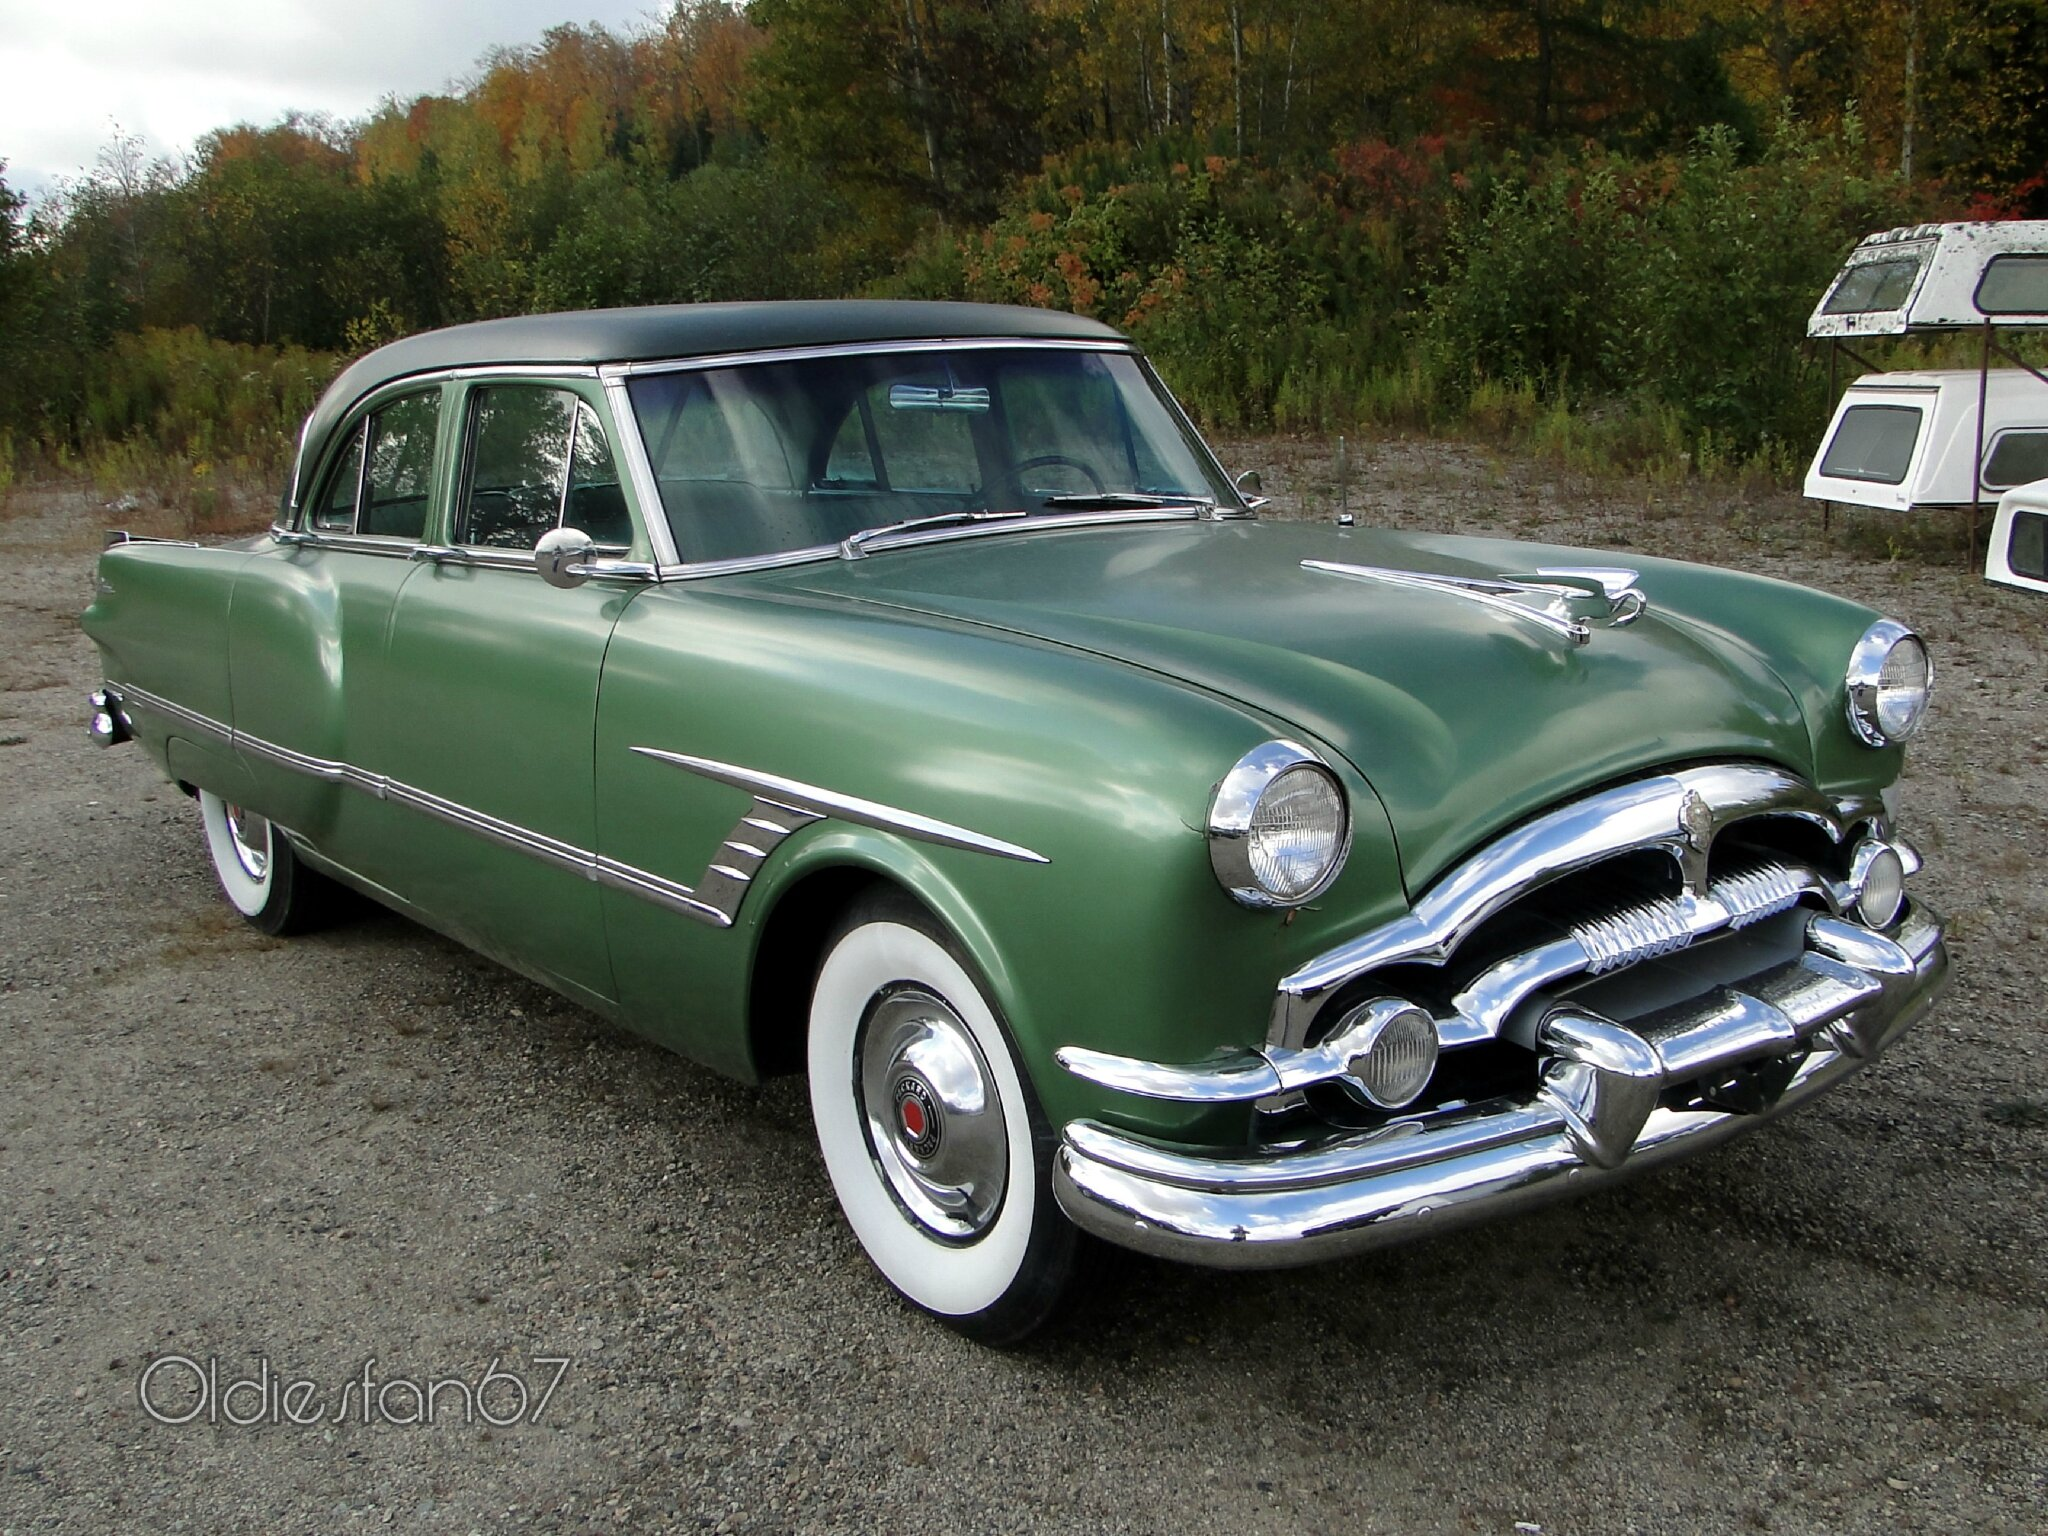 packard cavalier 4door sedan-1953